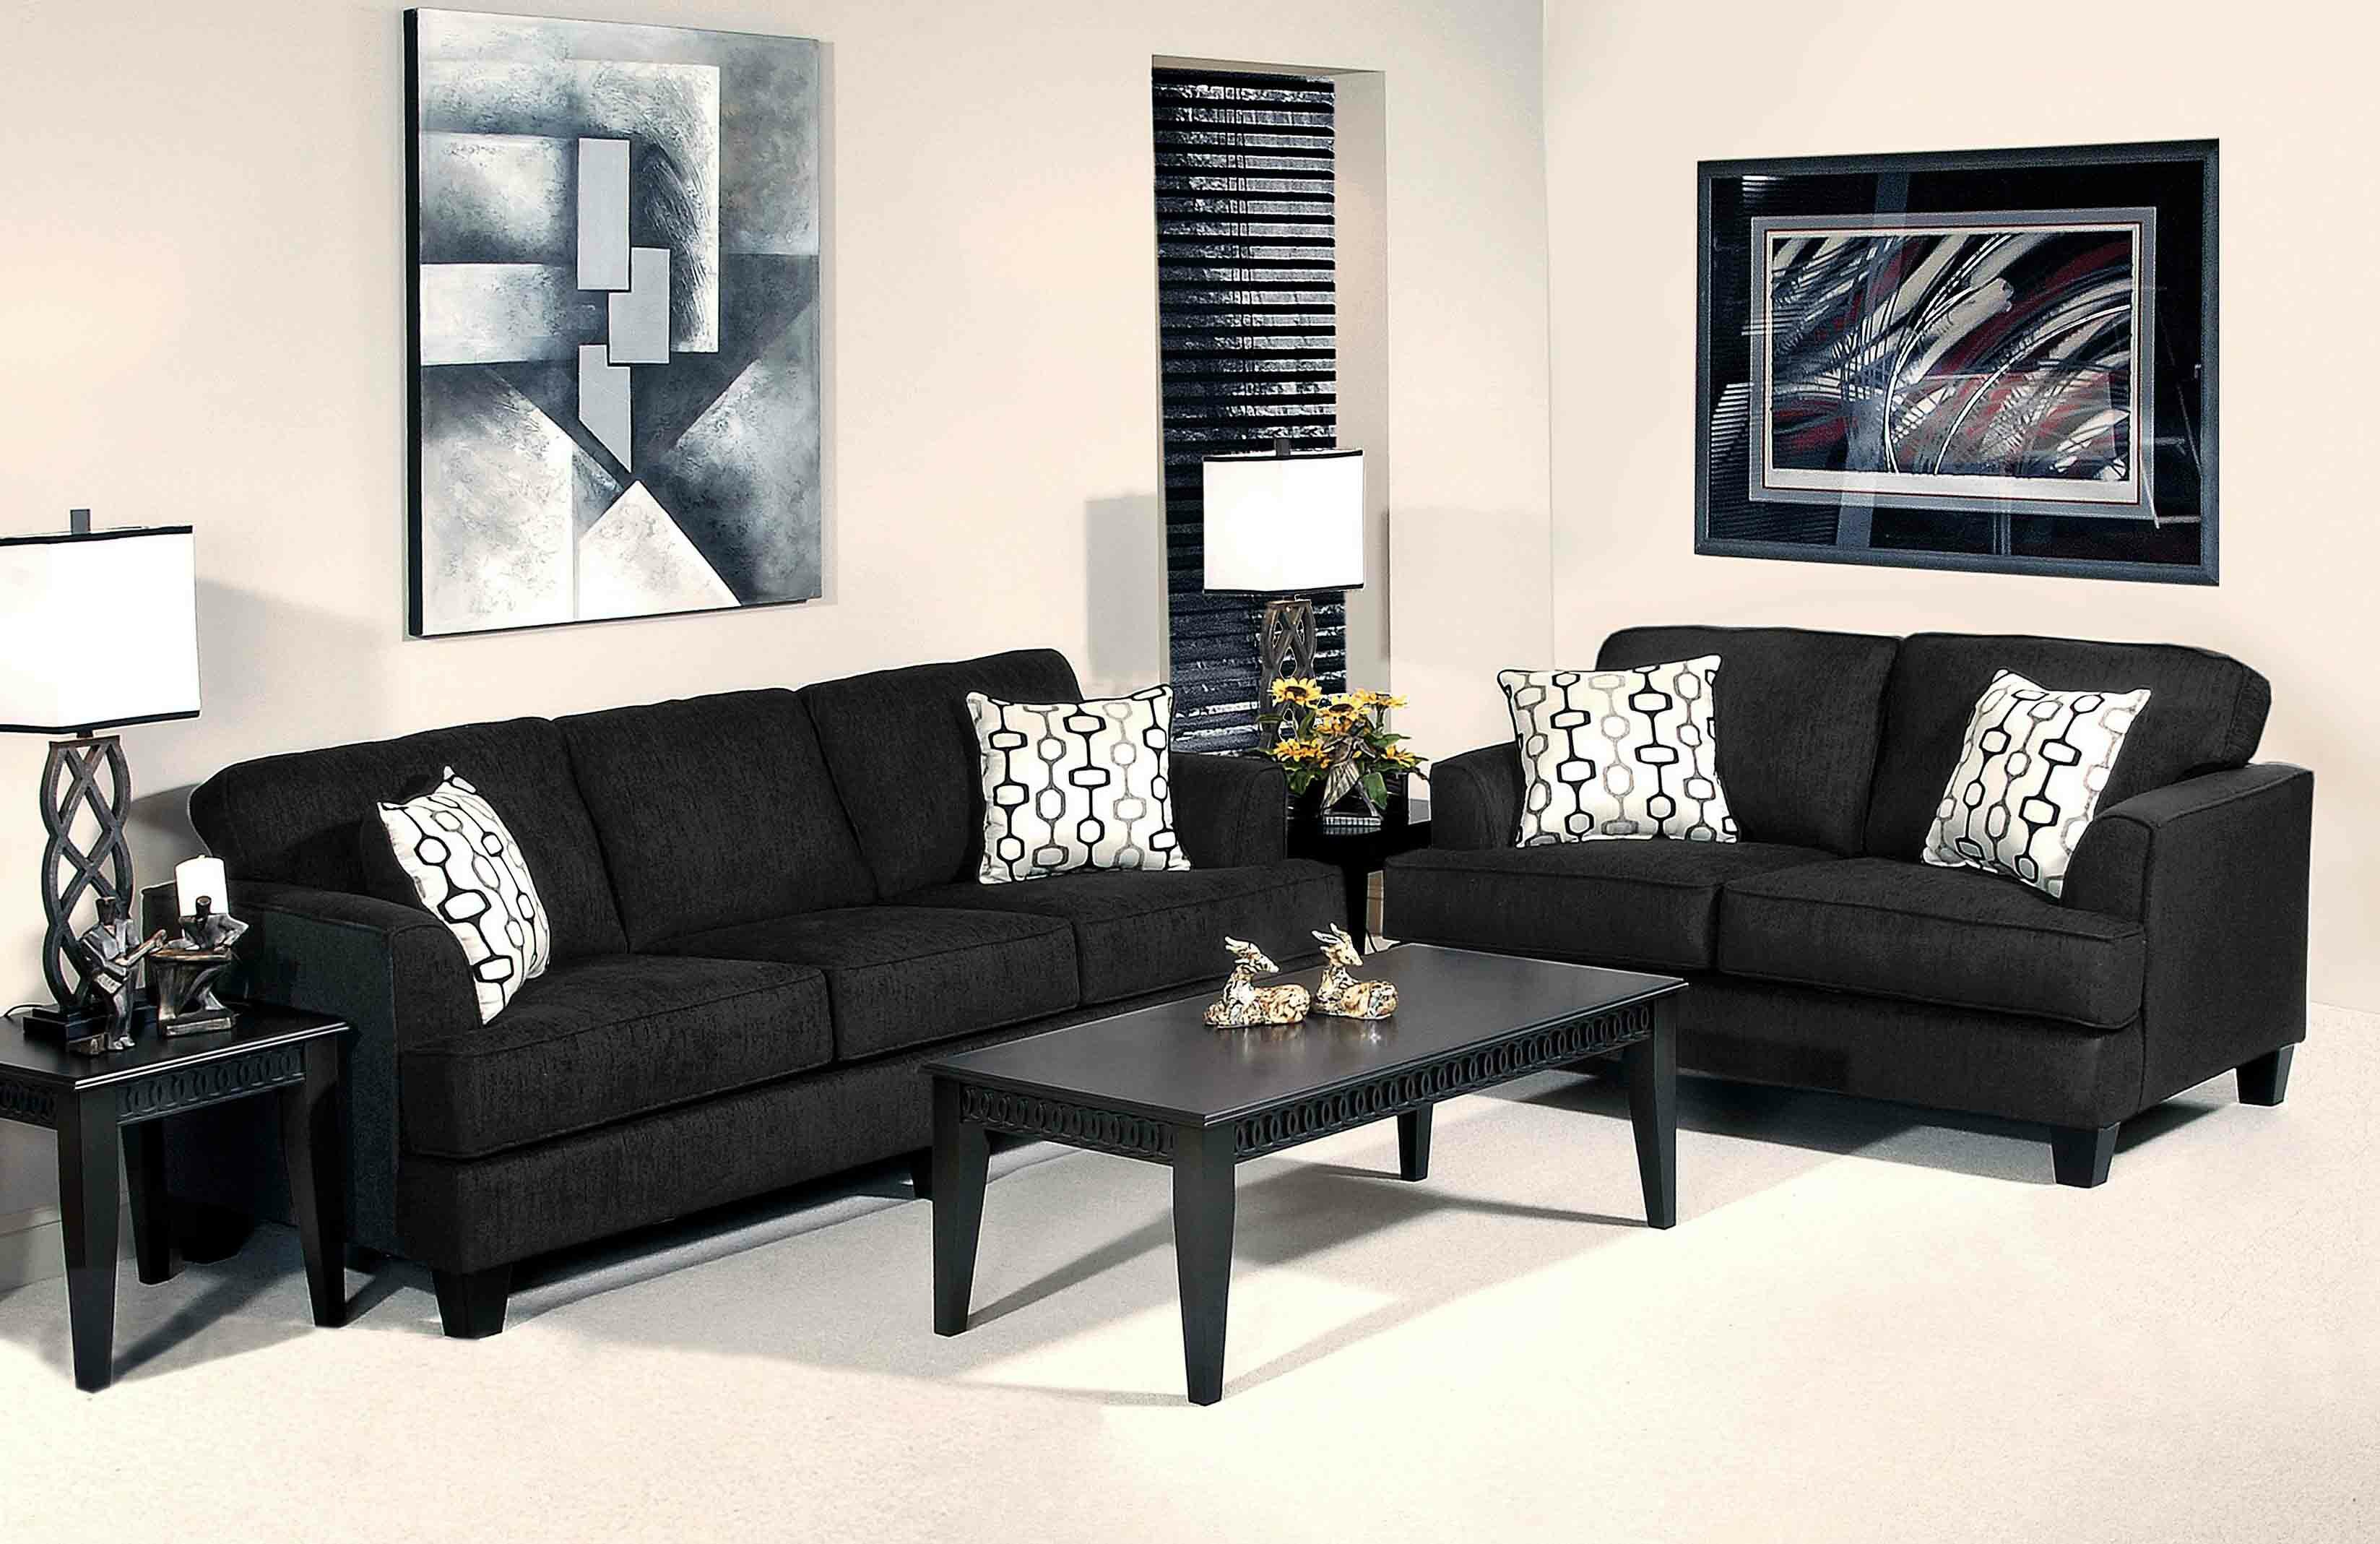 knoxville piece room products set newton living furniture brooklyn marshalltown two b pella oskaloosa des group traditional store grinnell item industries moines stationary